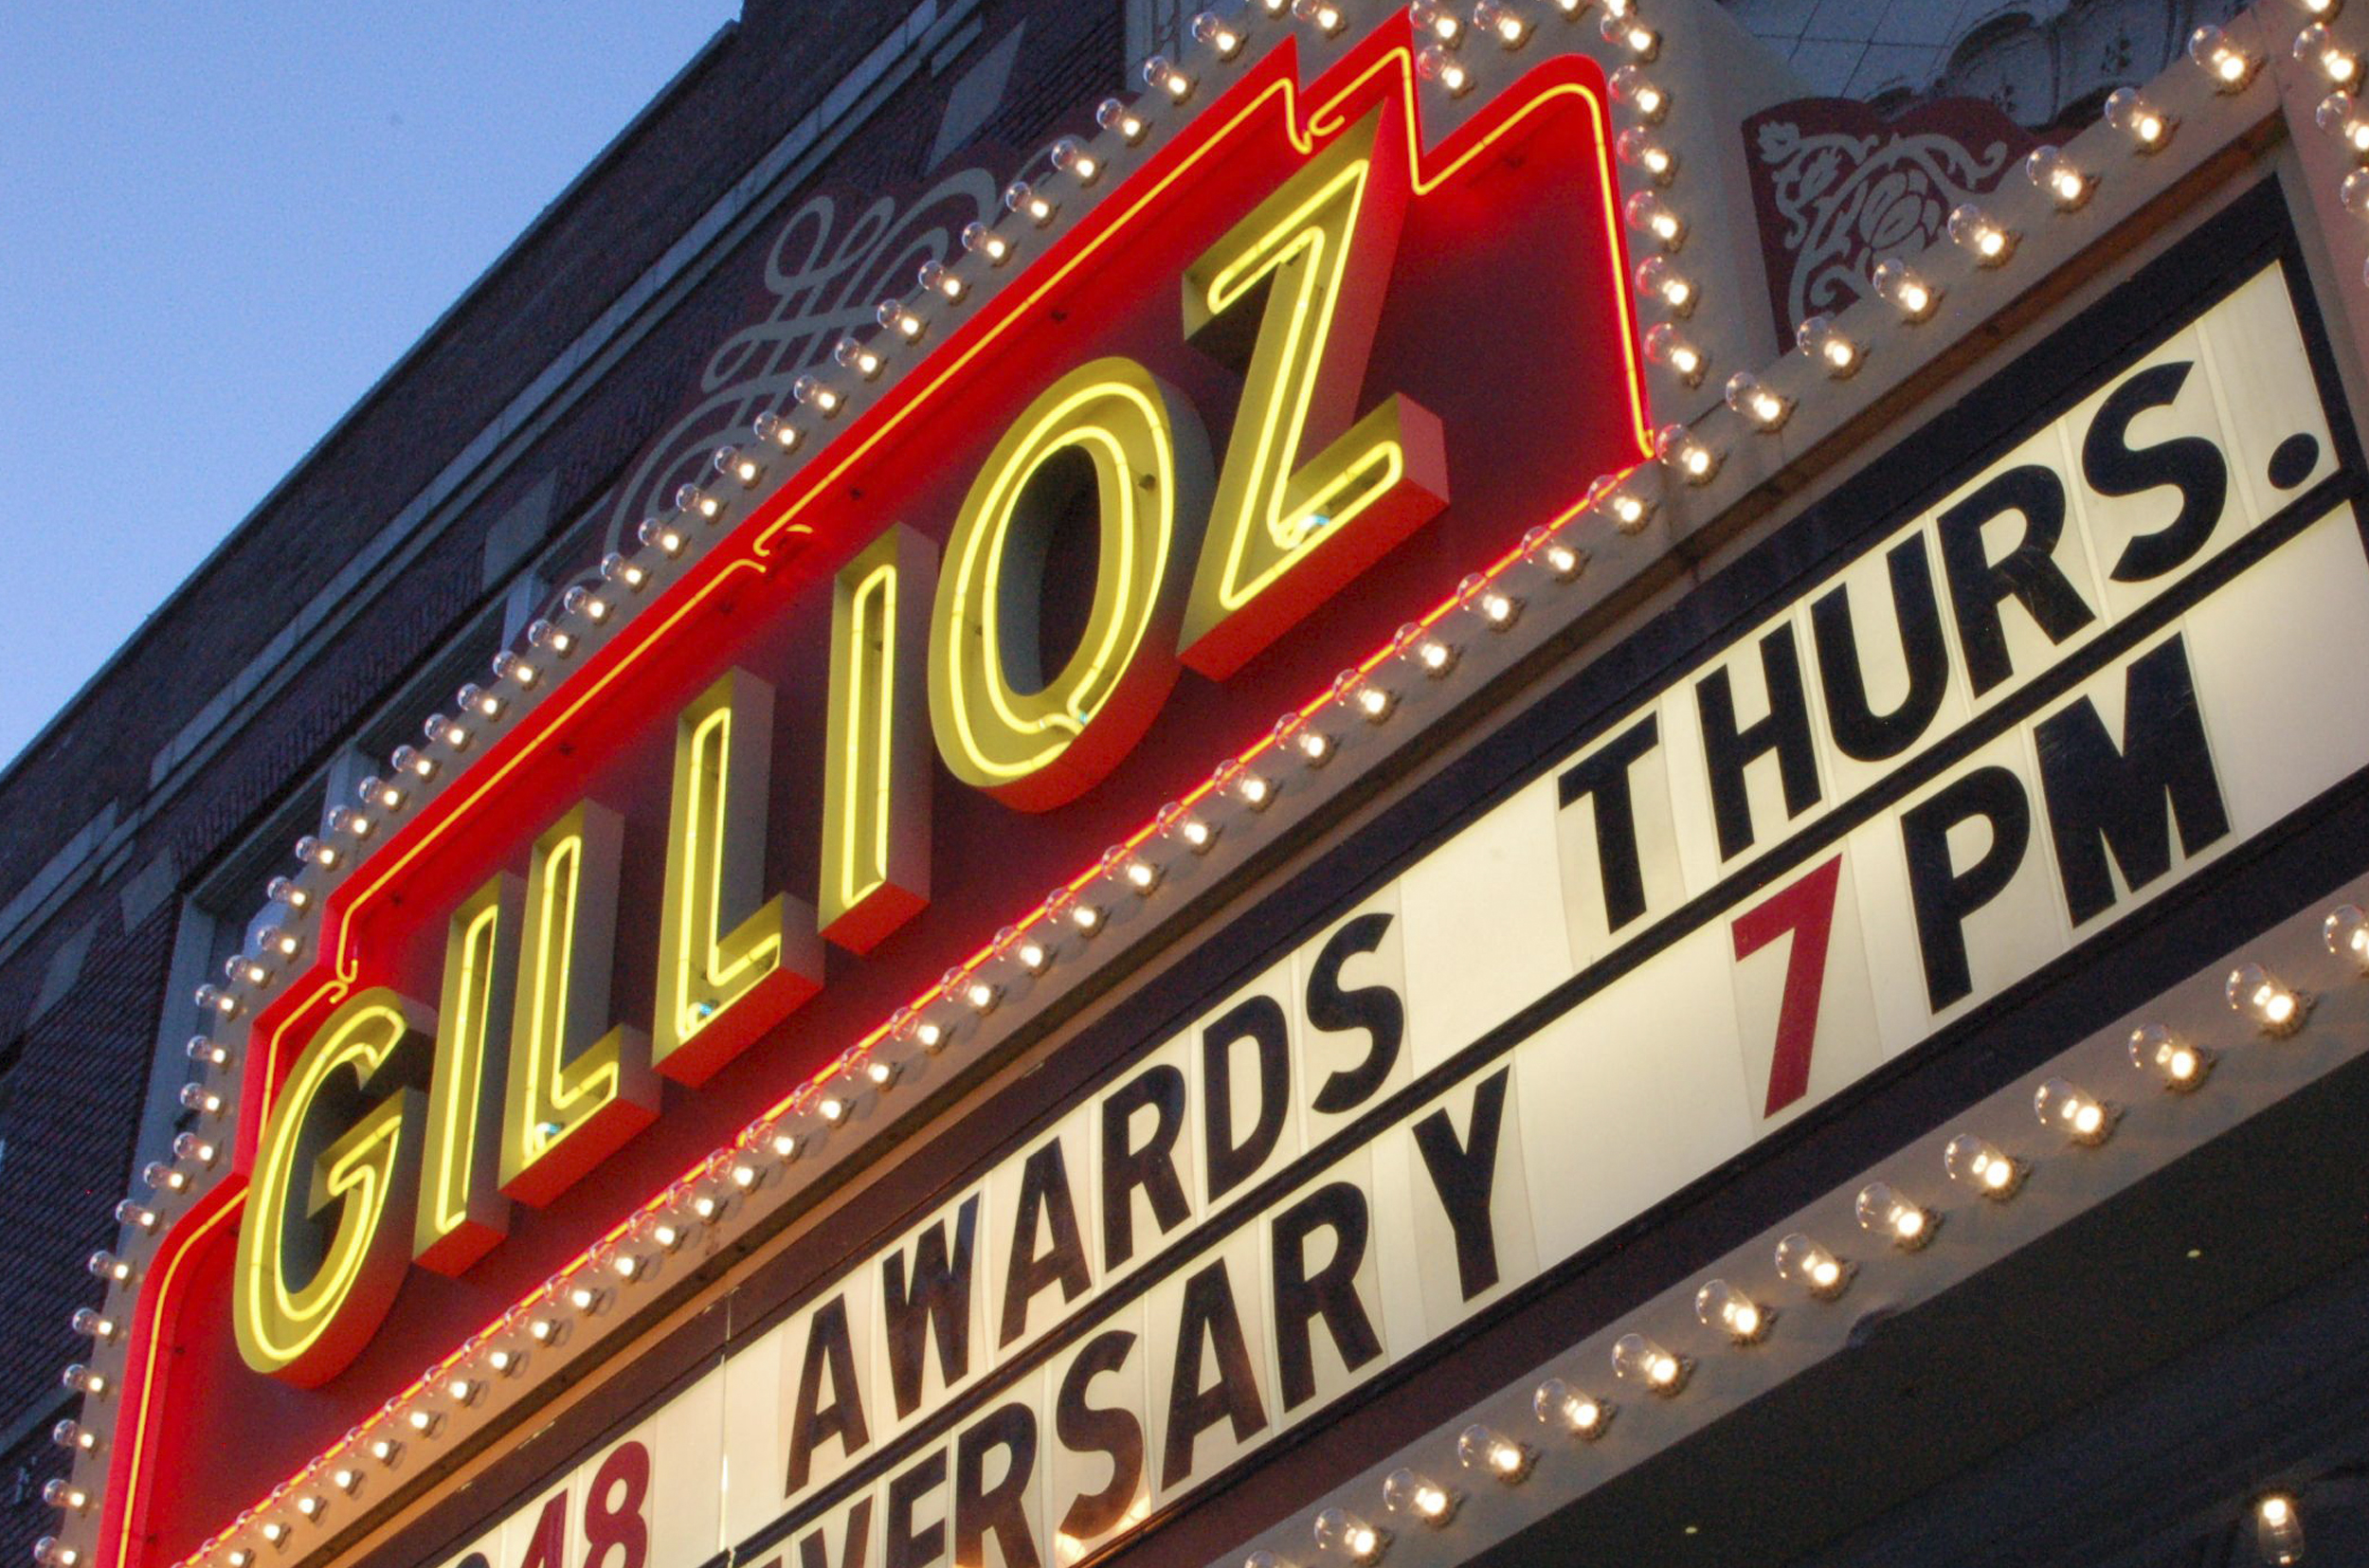 Gillioz theatre entertainment Missouri